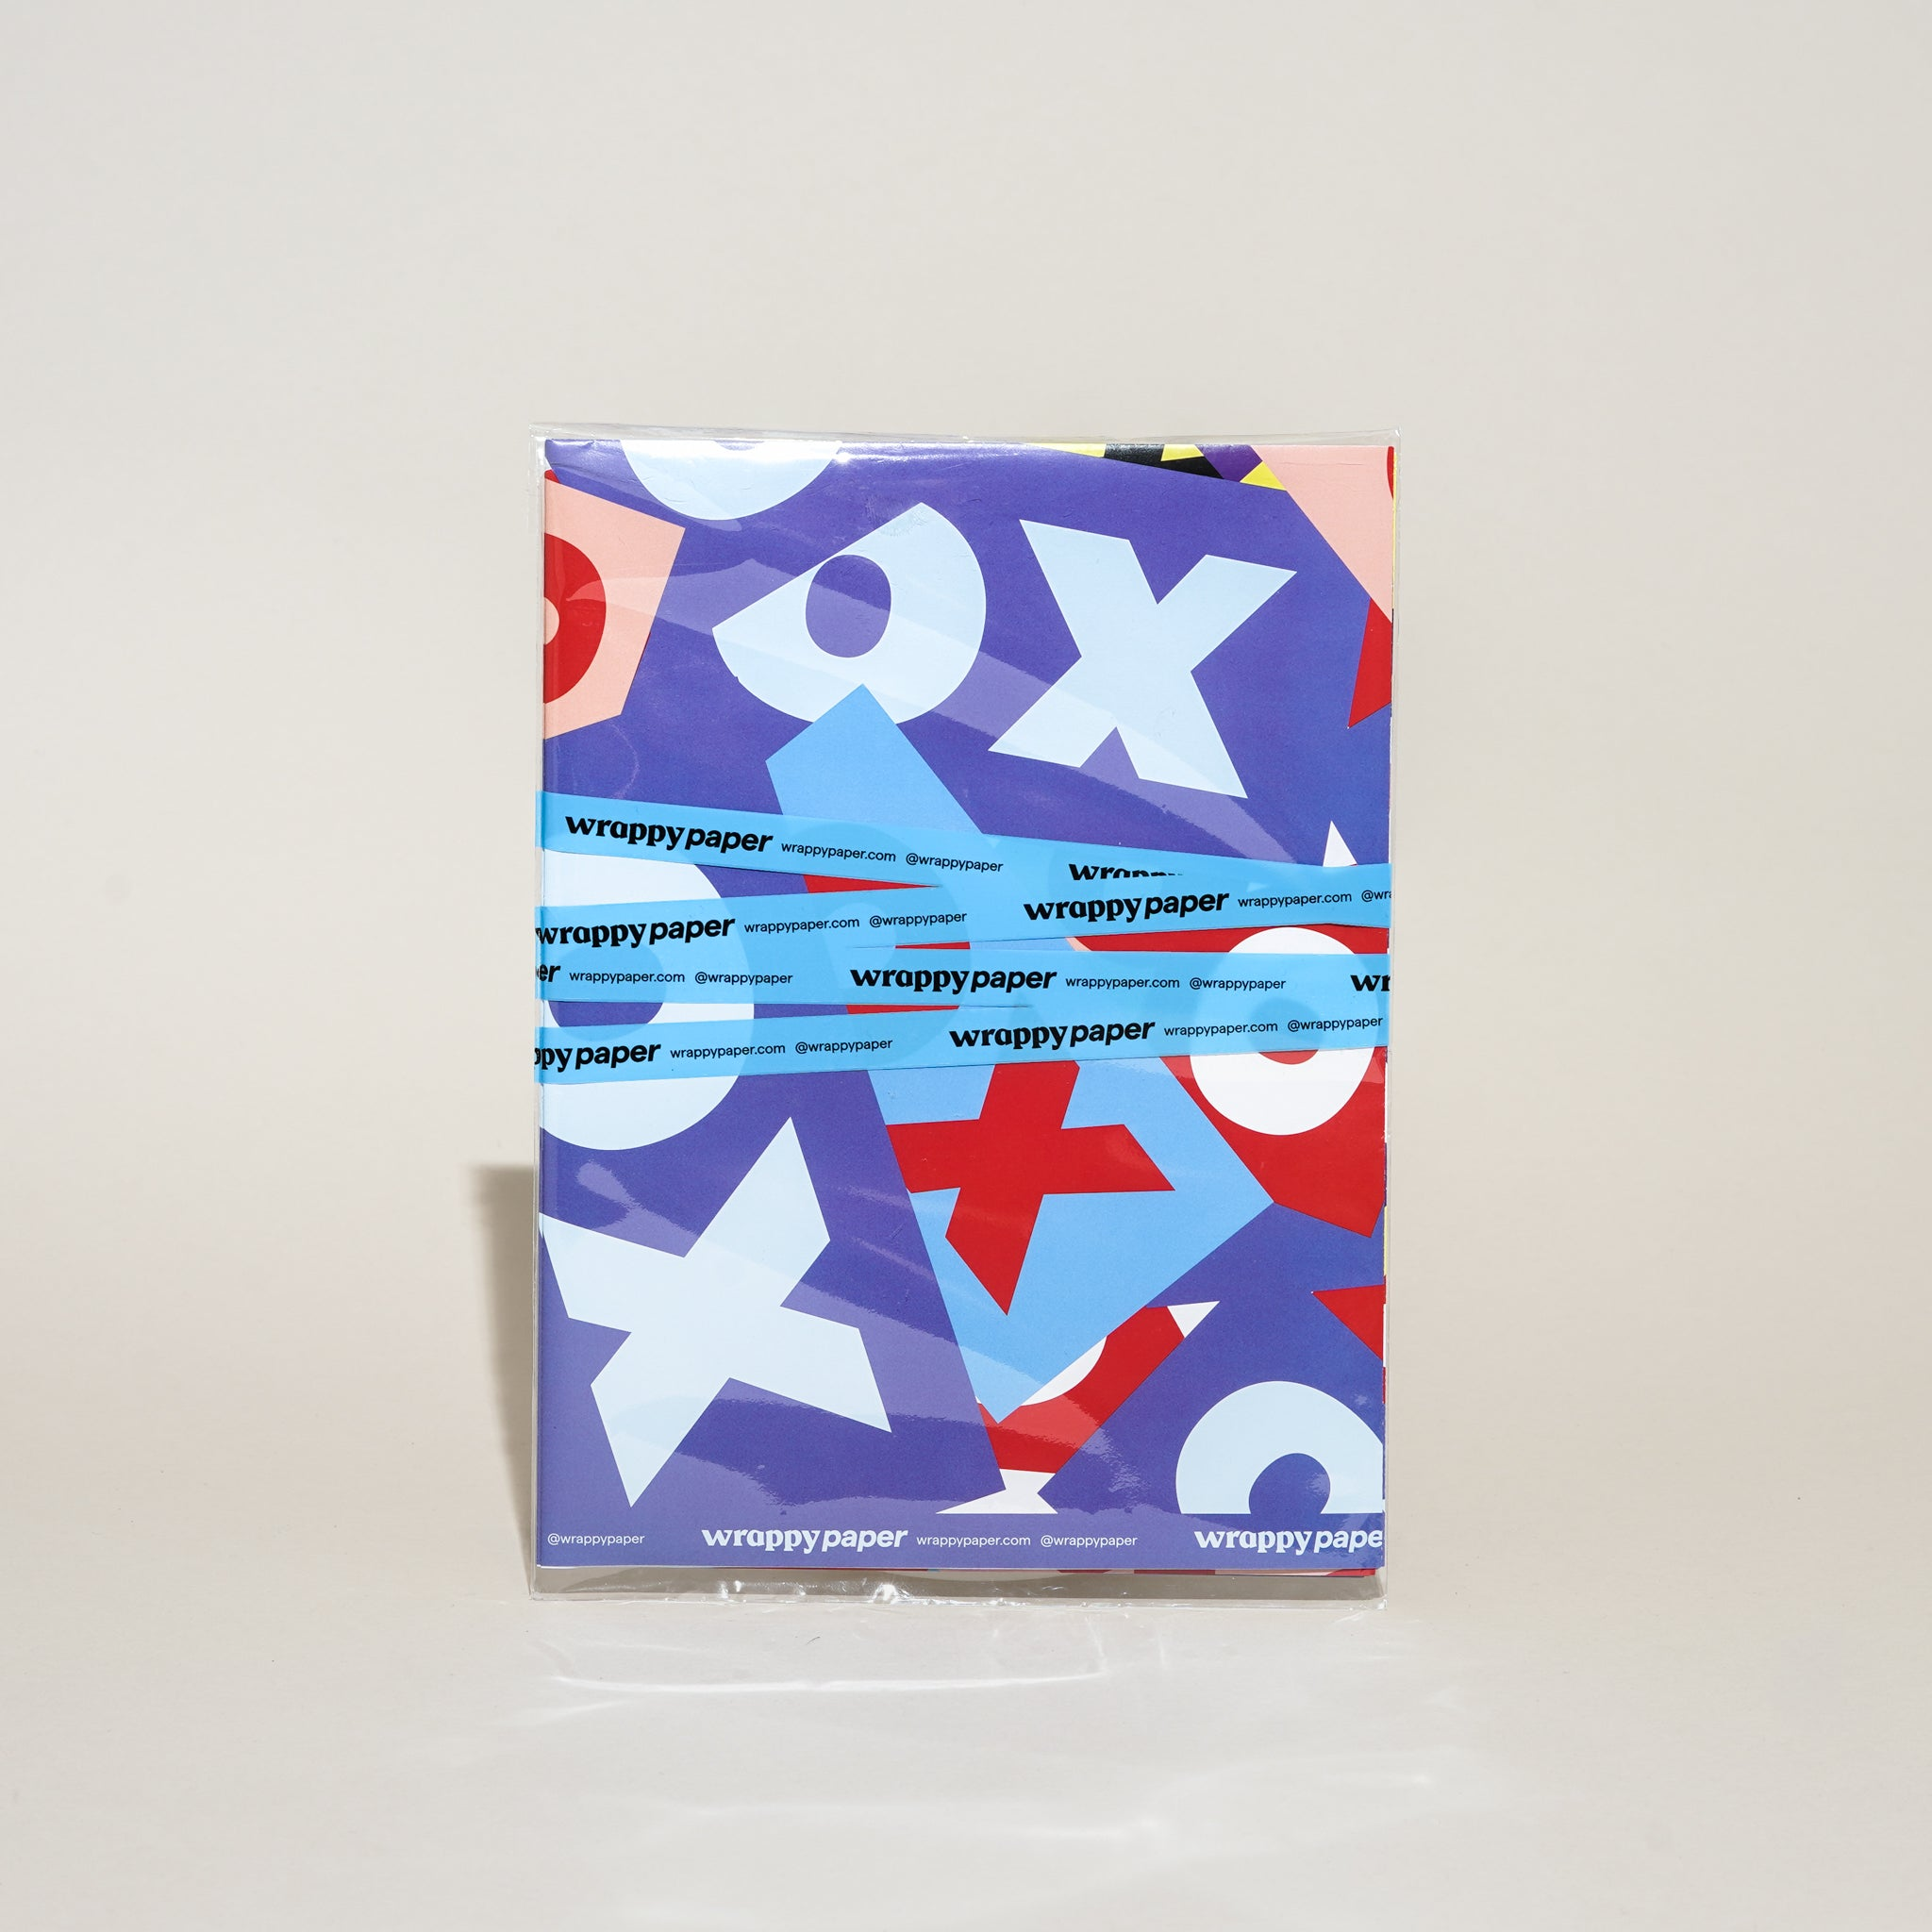 XO Wrapping Paper